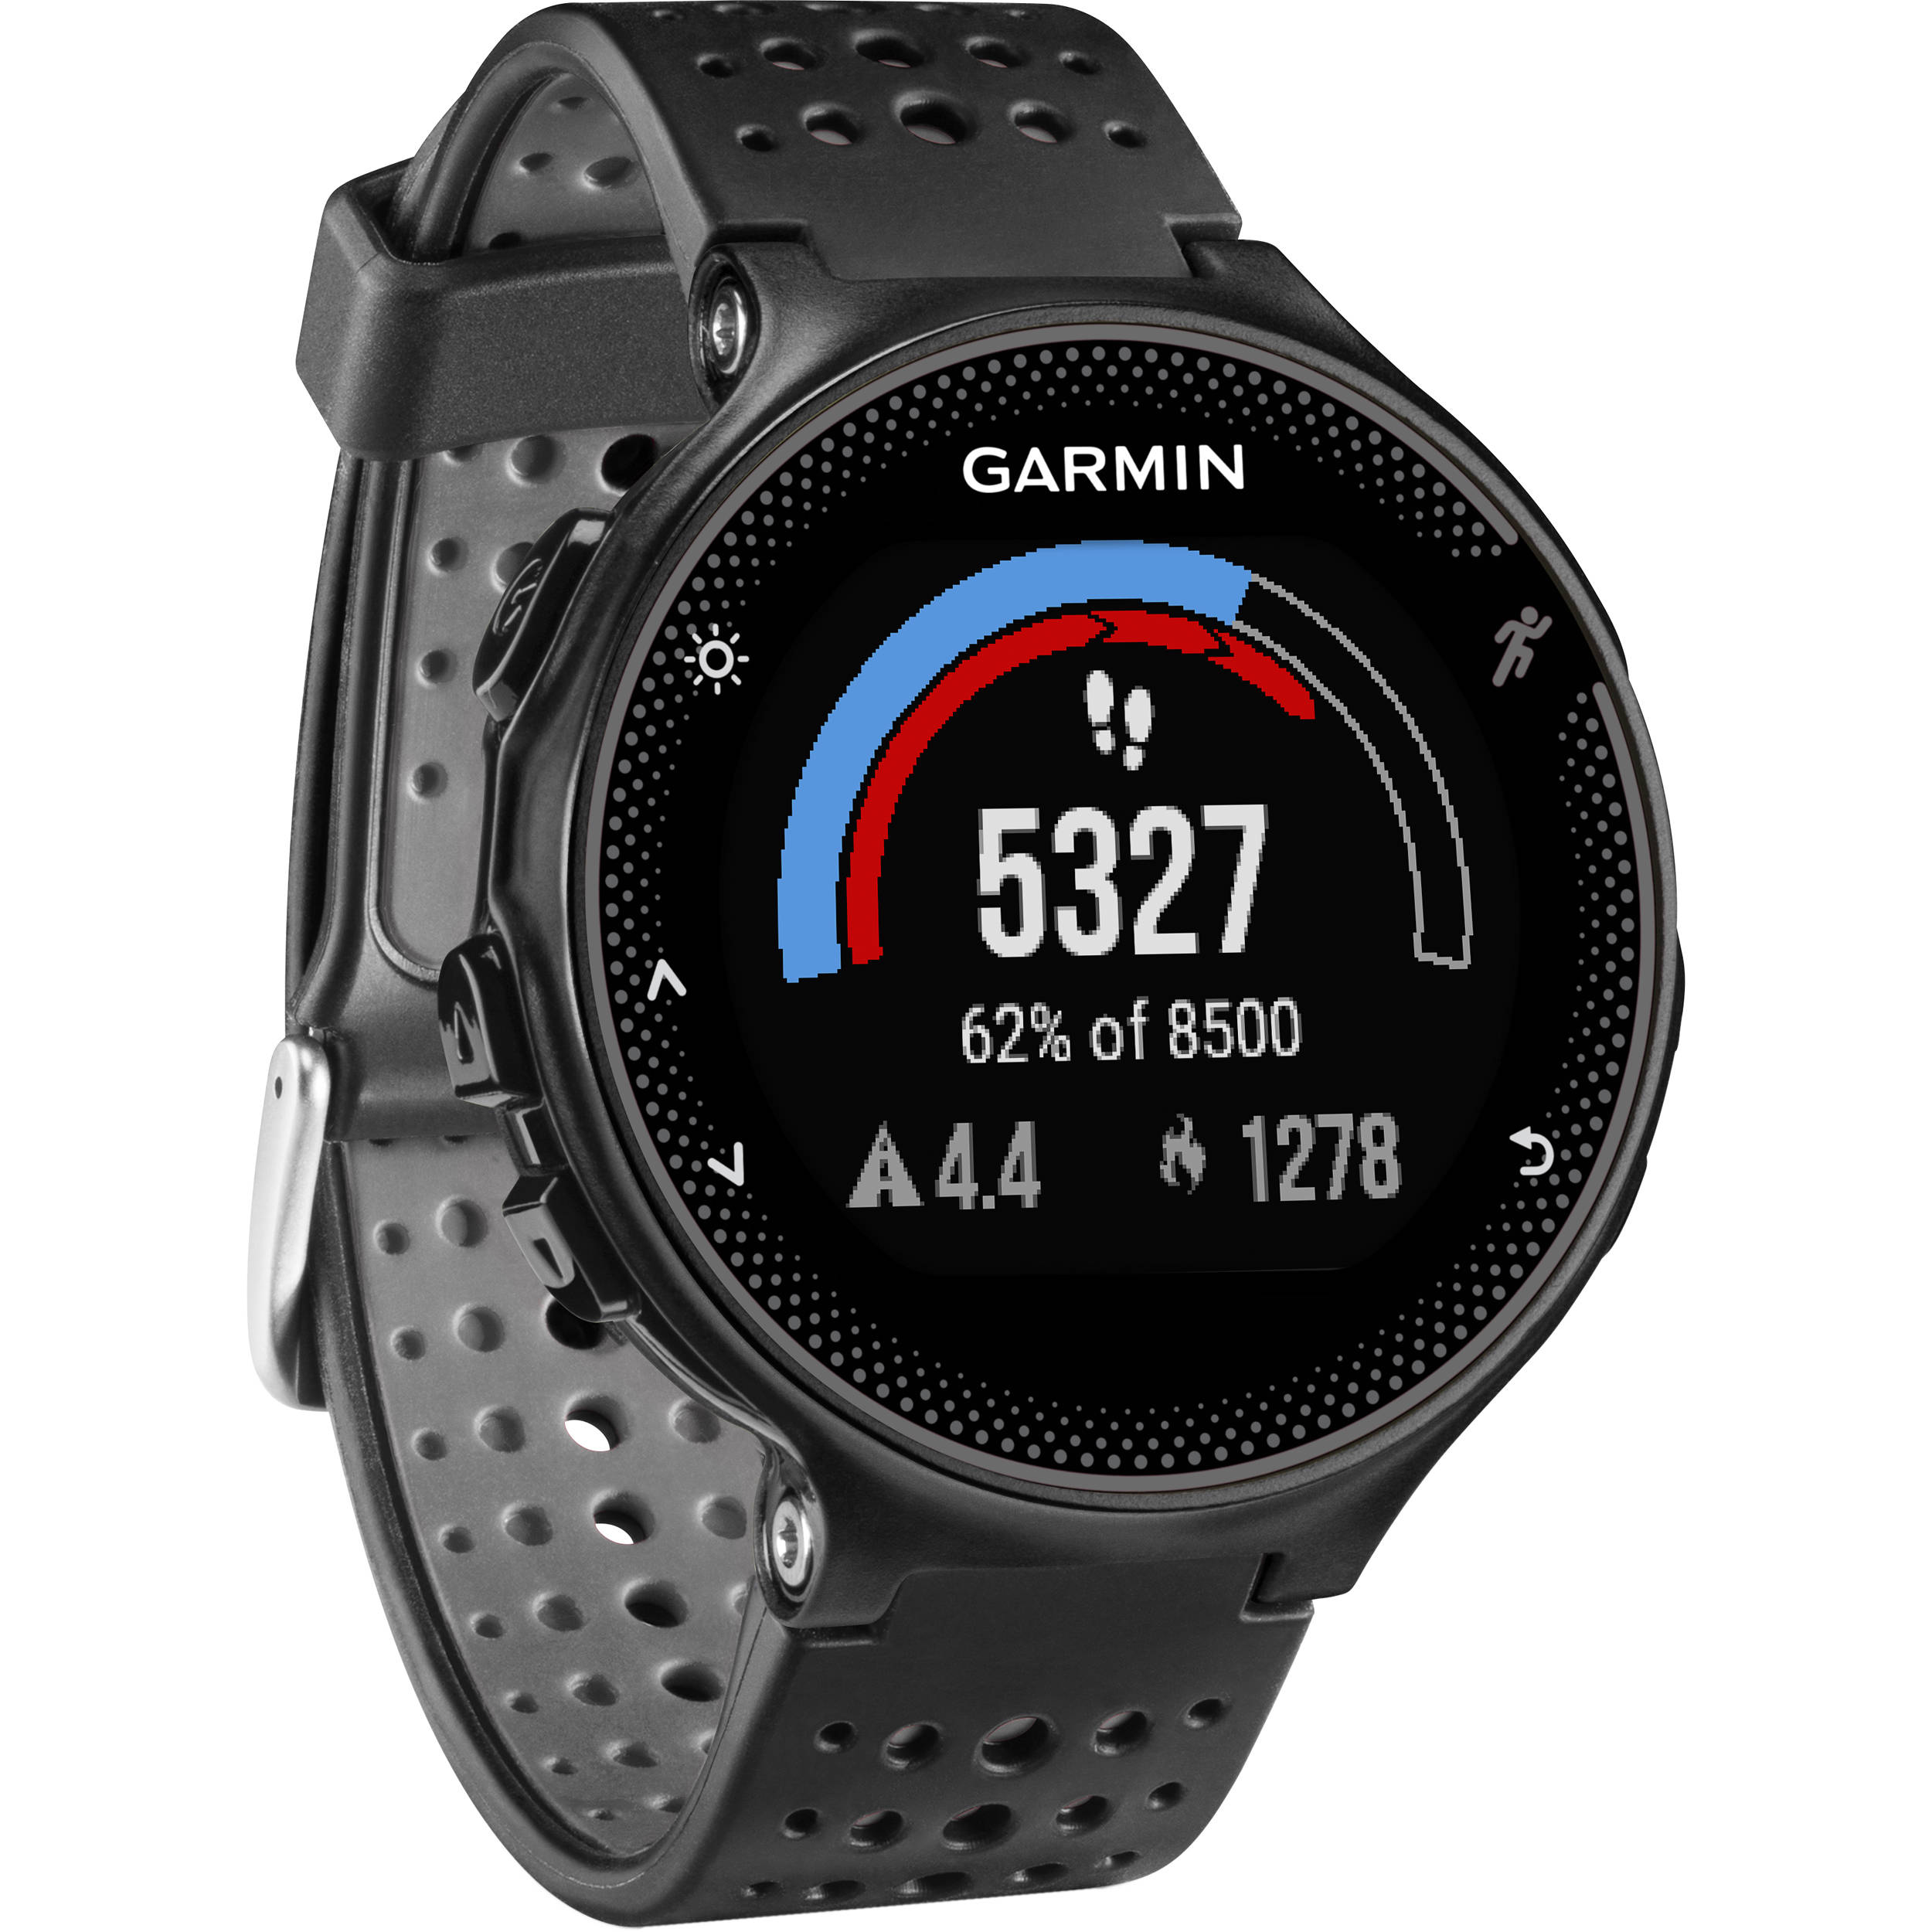 gps cycle pc shop forerunner asp watch hr viewprd garmin watches computers